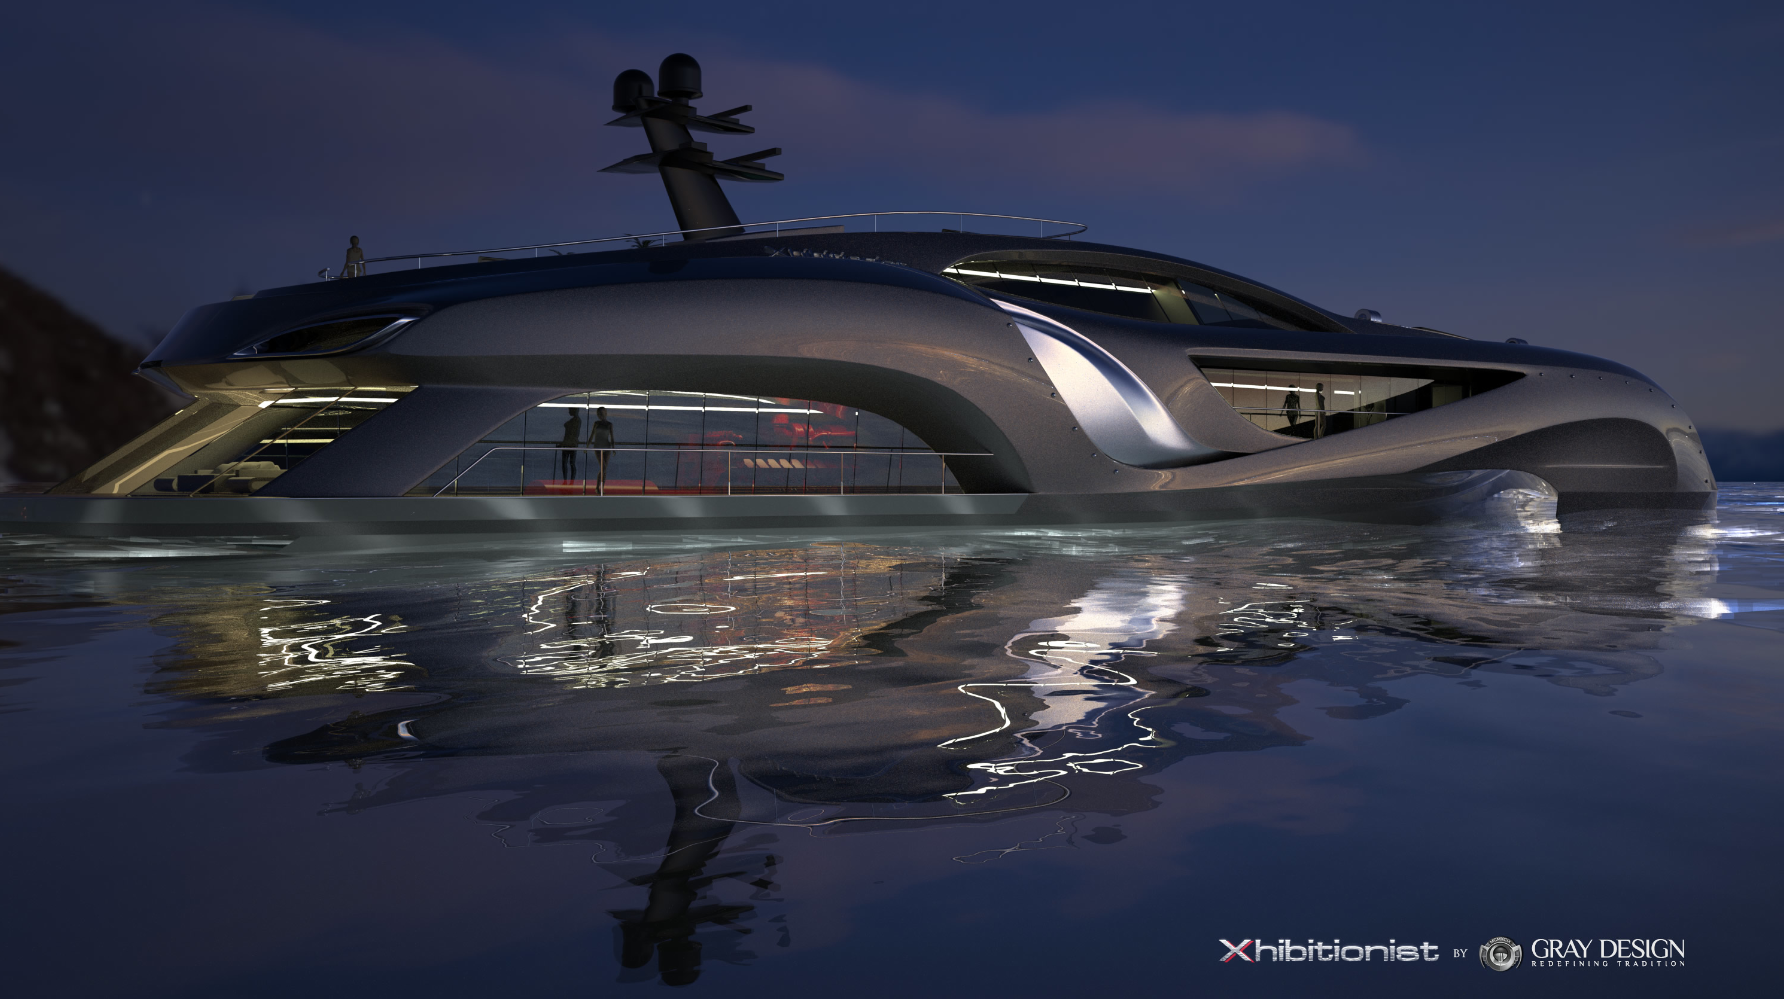 Xhibitionist When A Superyacht Meets A Supercar Yacht Design